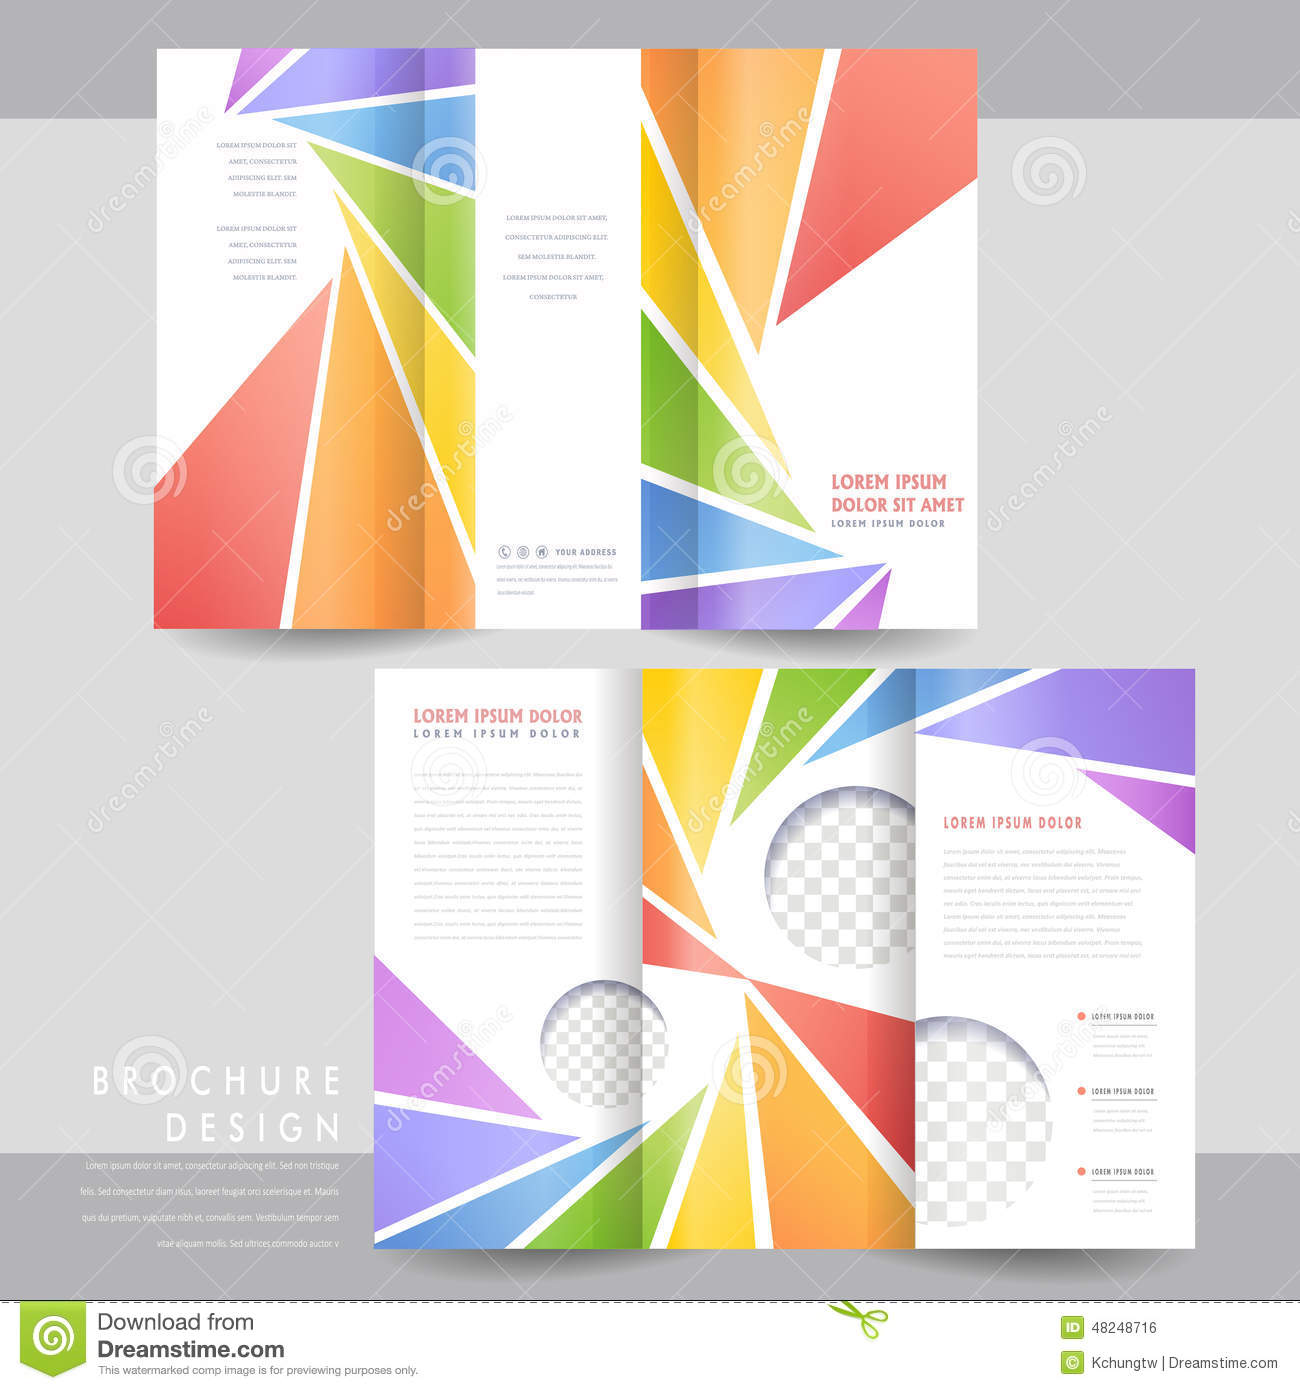 Colorful tri fold brochure template design stock vector for Brochure samples templates